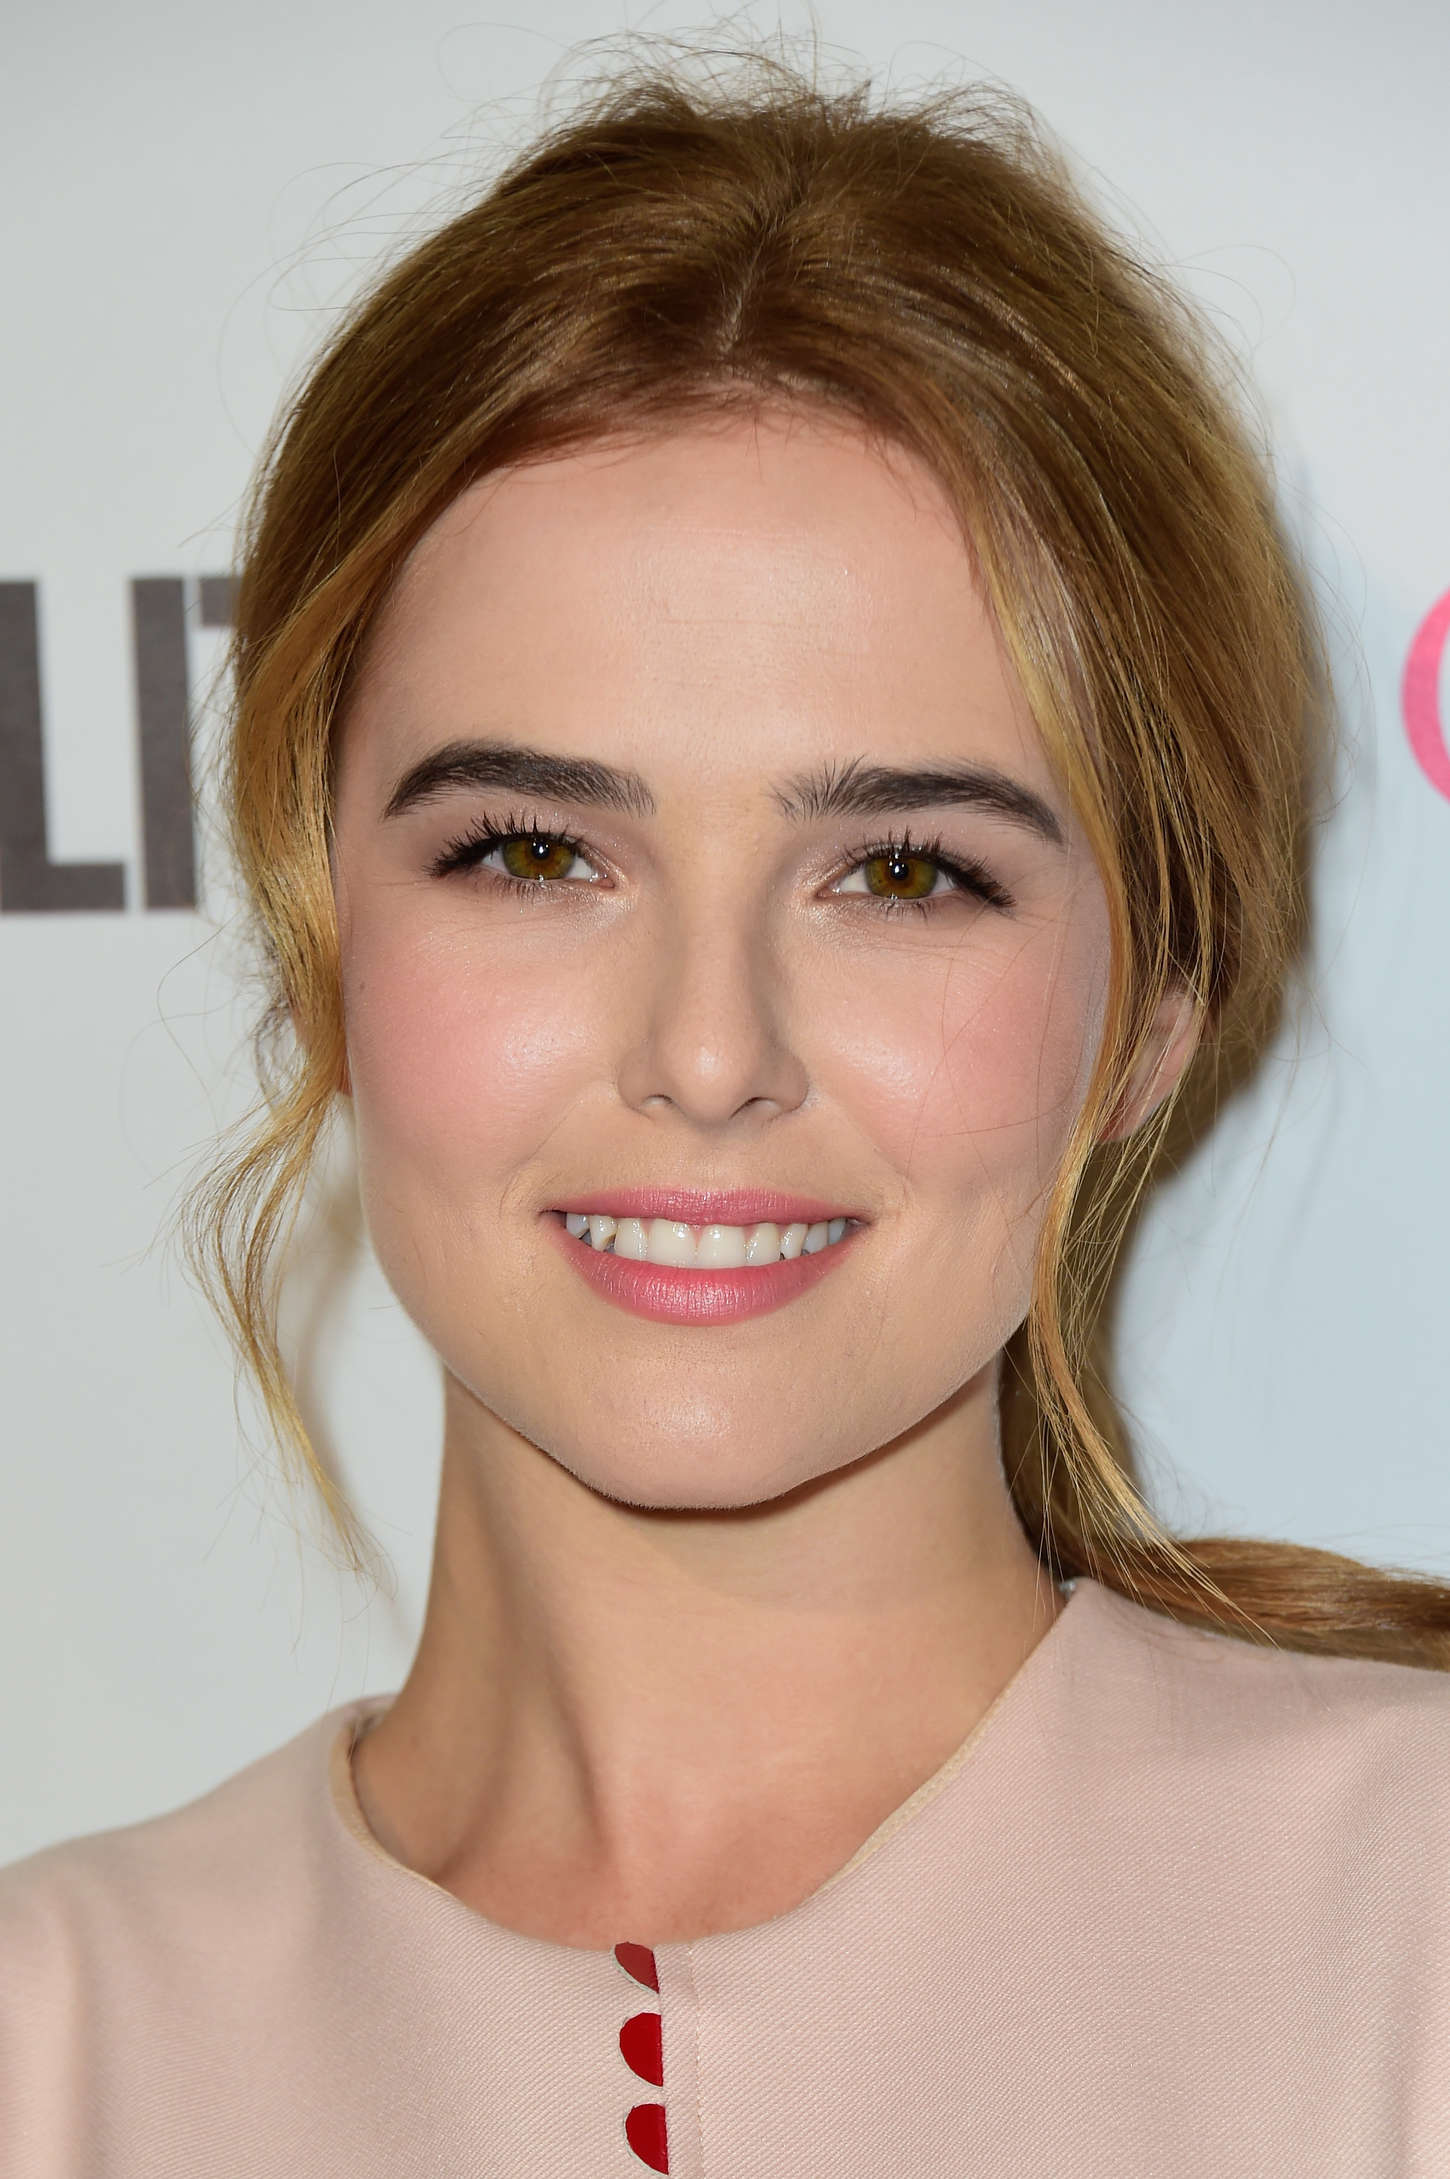 zoey deutch galleryzoey deutch gif, zoey deutch tumblr, zoey deutch vk, zoey deutch and avan jogia, zoey deutch gif hunt, zoey deutch photoshoot, zoey deutch png, zoey deutch фото, zoey deutch gallery, zoey deutch site, zoey deutch screencaps, zoey deutch films, zoey deutch gif tumblr, zoey deutch вк, zoey deutch wallpaper, zoey deutch wikipedia, zoey deutch icons, zoey deutch фильмы, zoey deutch source, zoey deutch interview